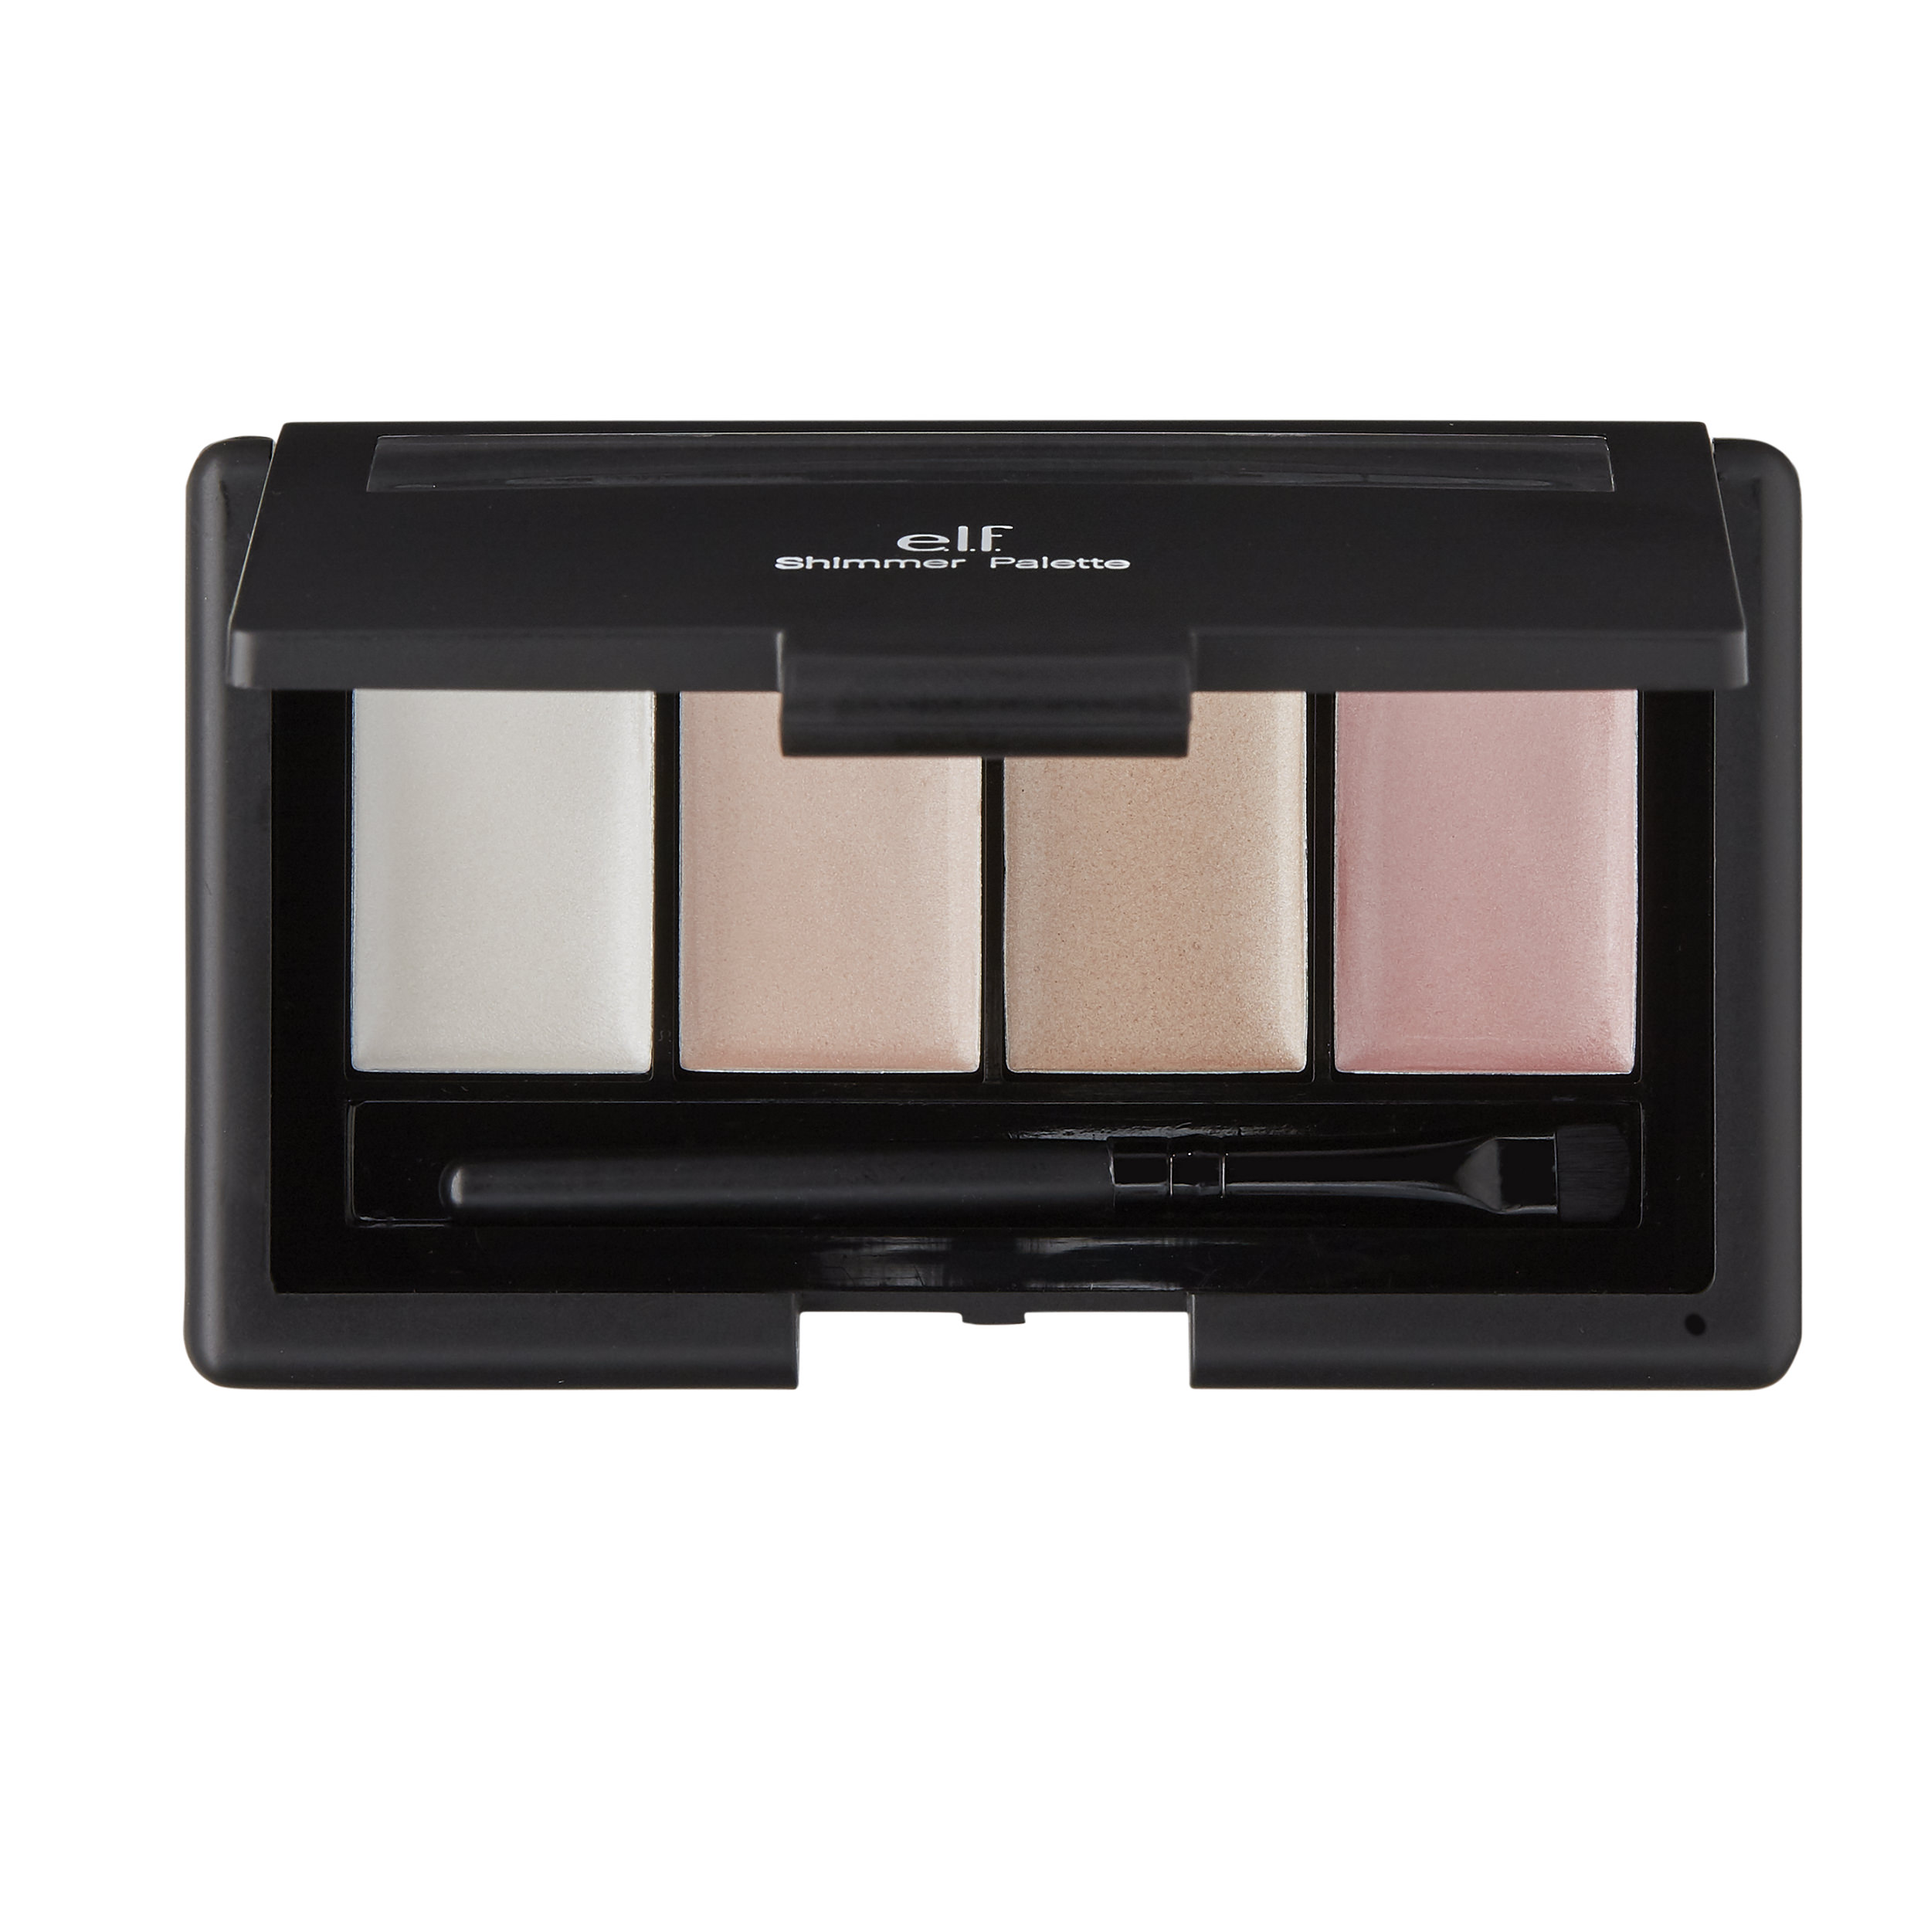 e.l.f. Shimmer Palette, with Brush